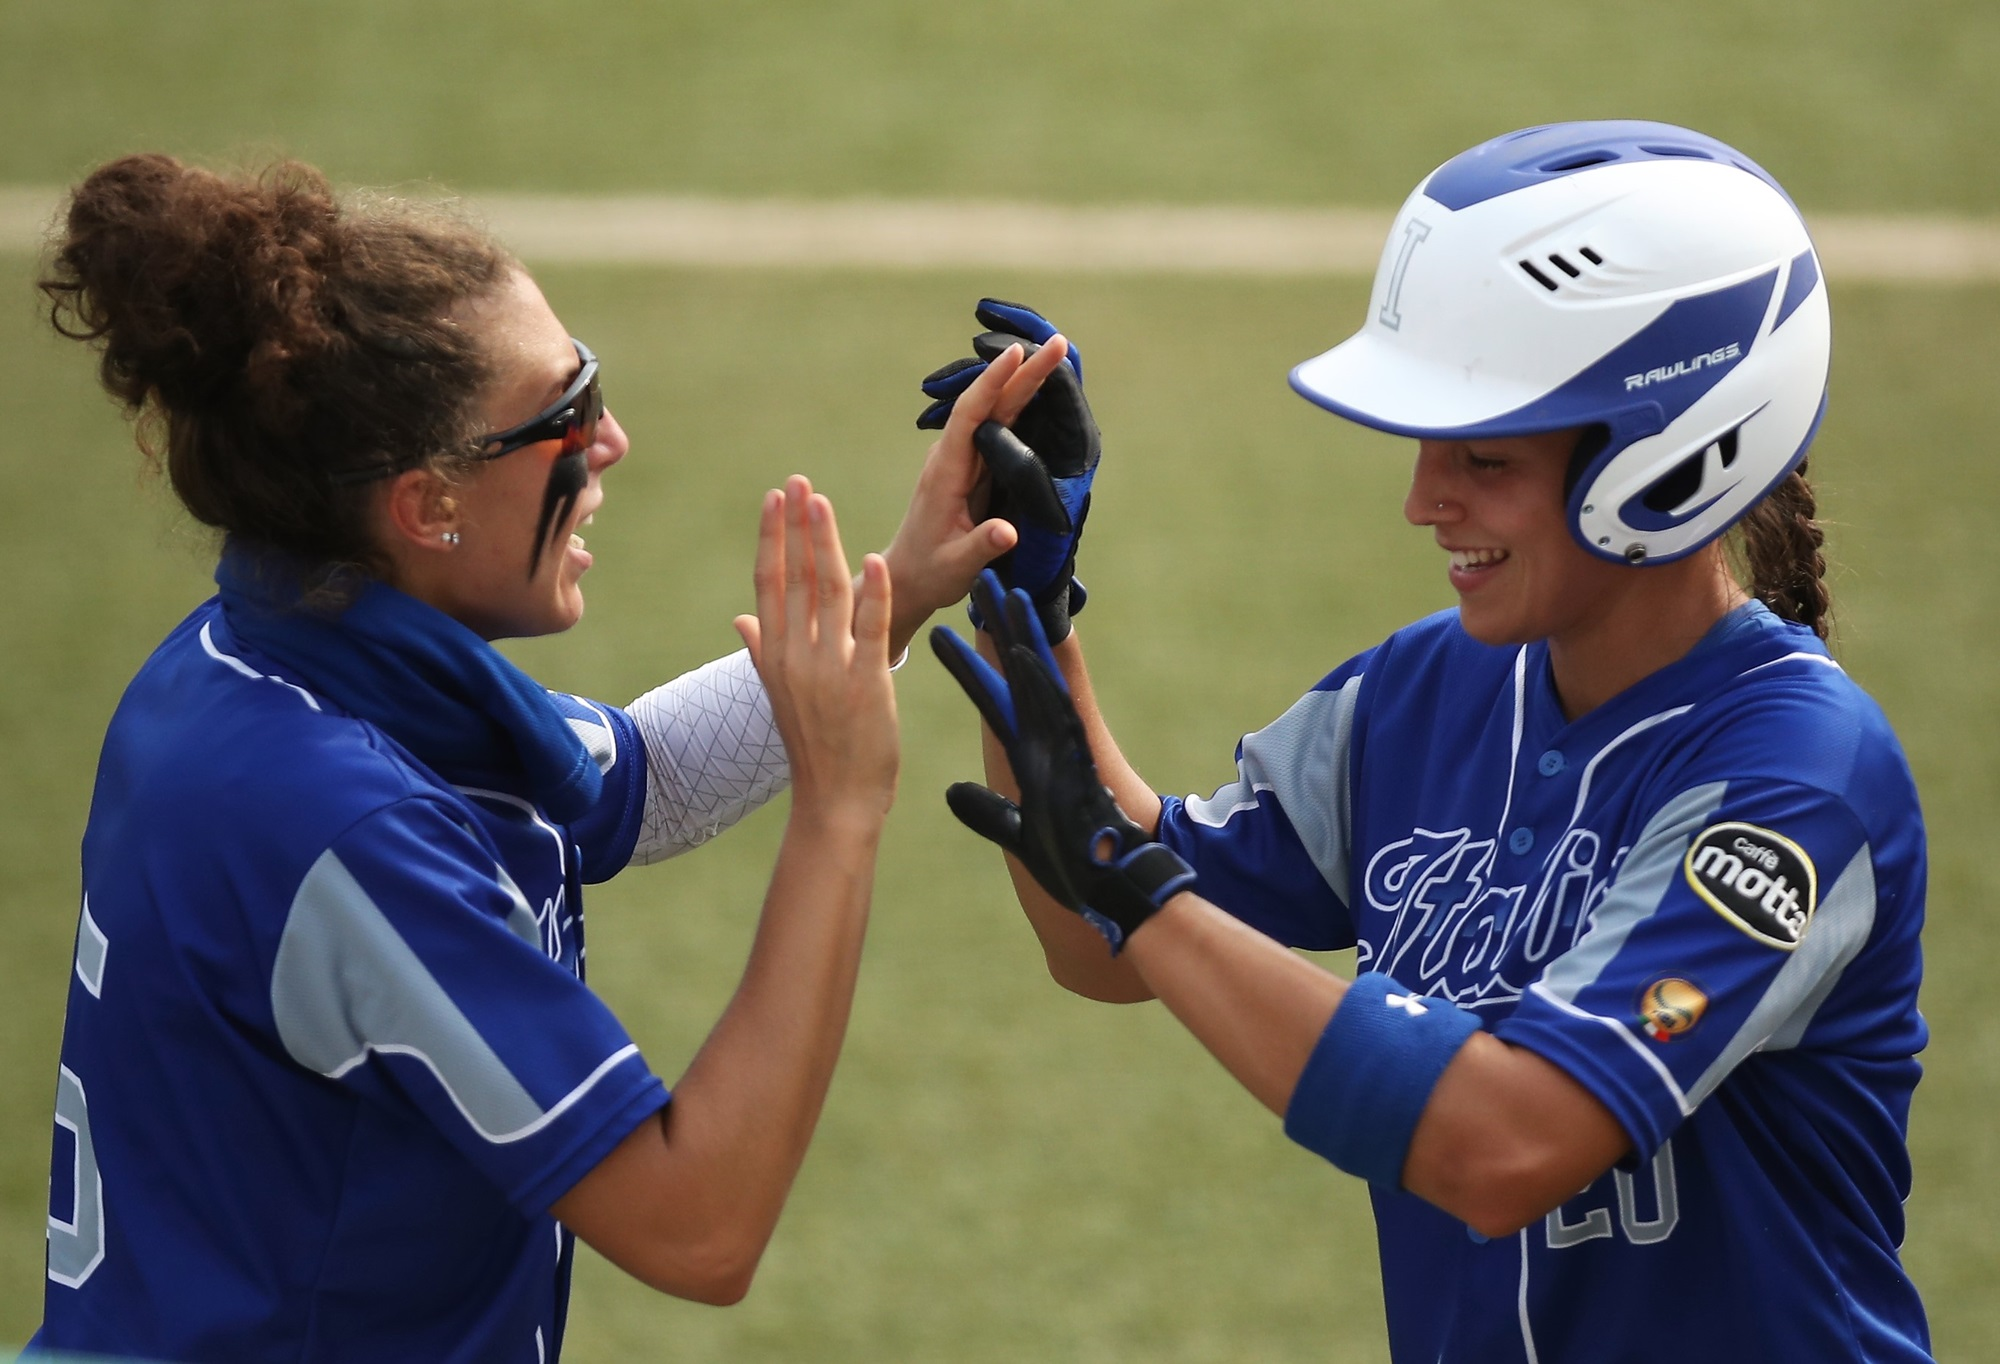 Erika Piancastelli, on the right, scored the only run